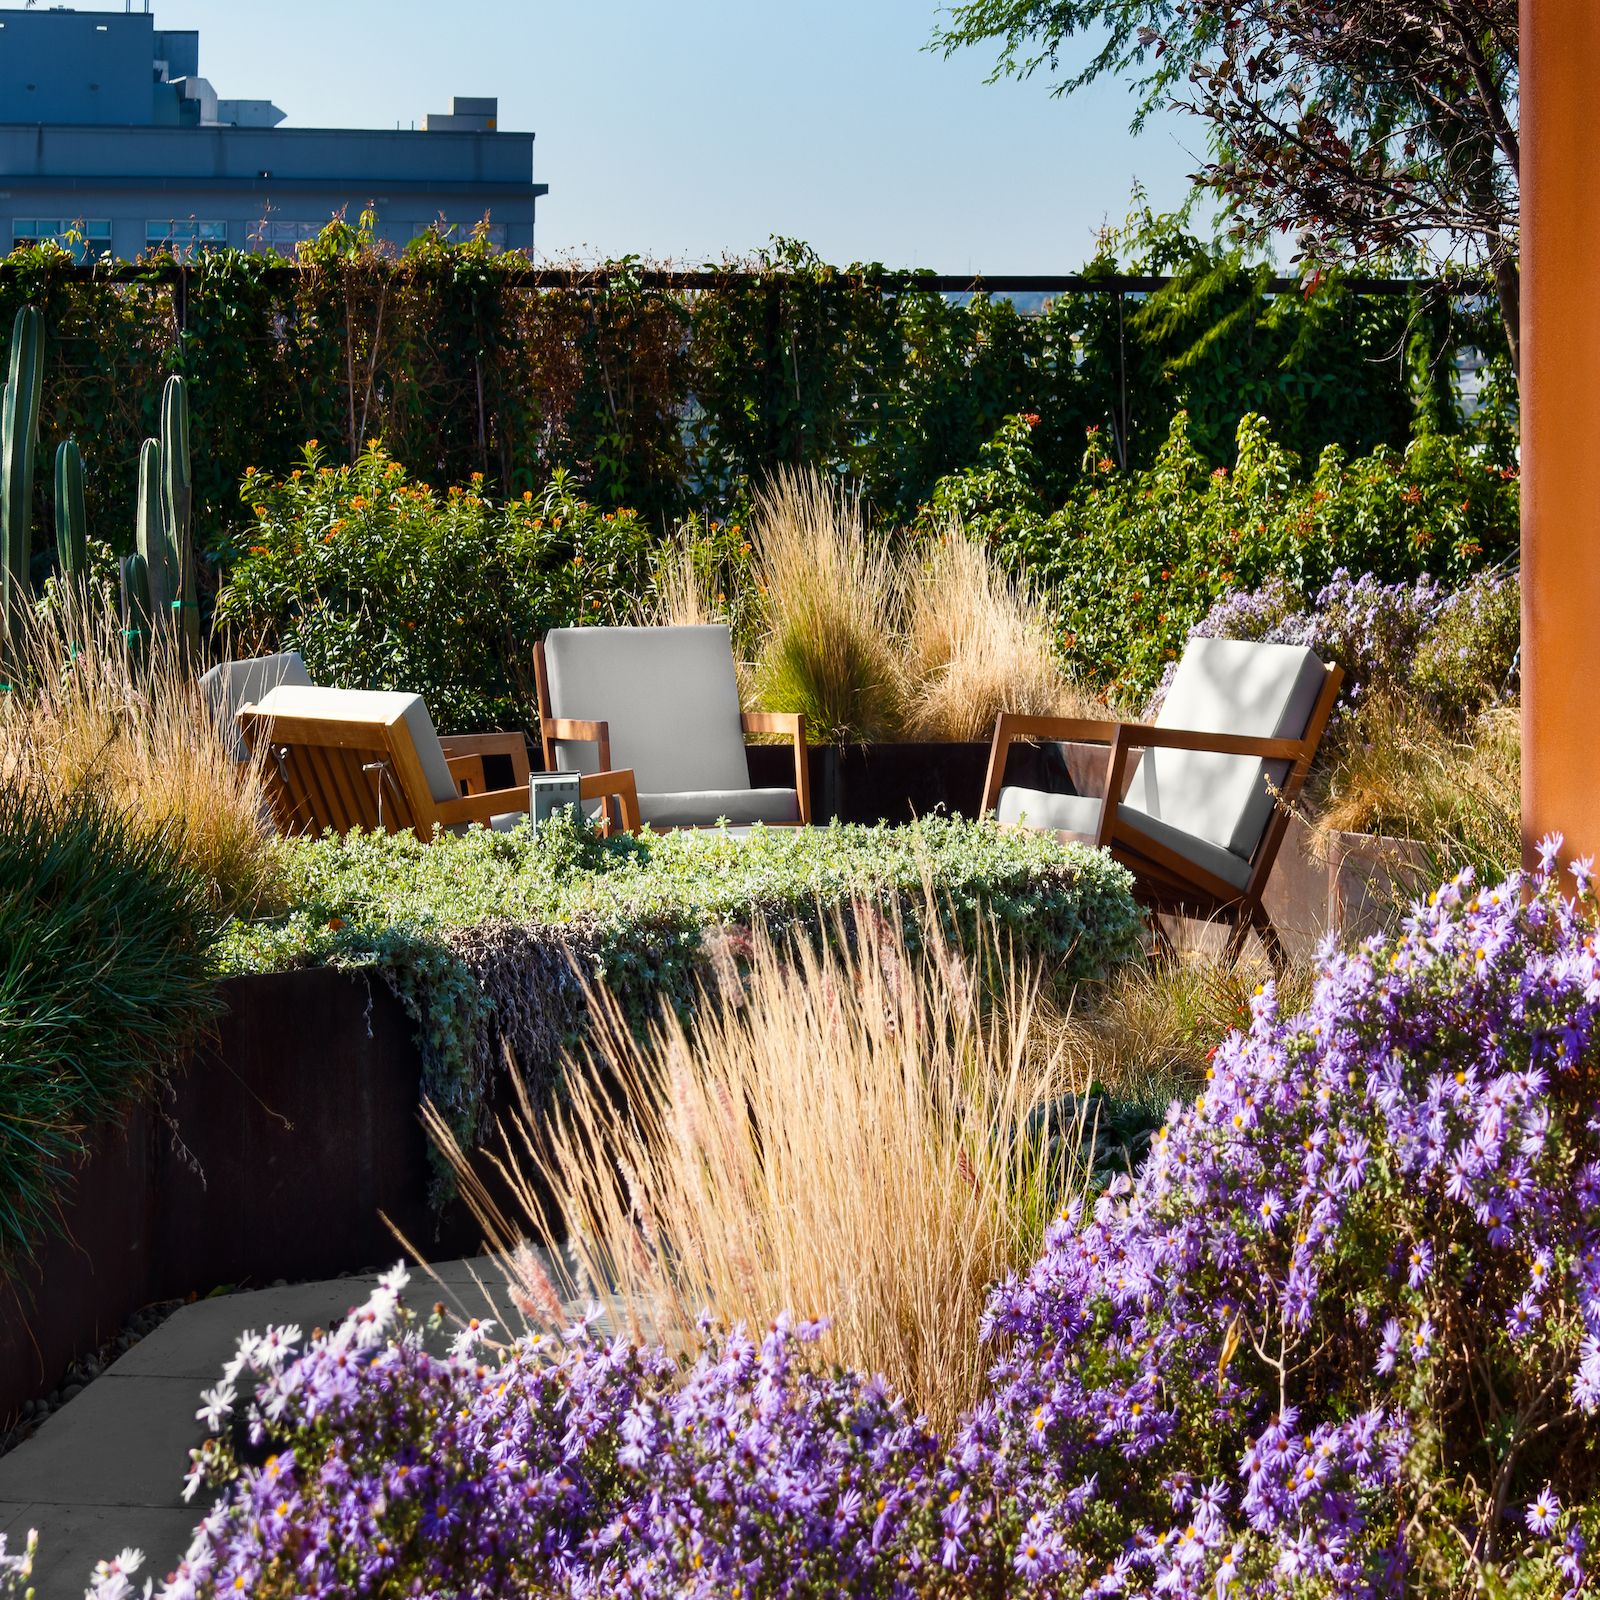 Image of chairs in a modern condo building garden with lilacs and cacti